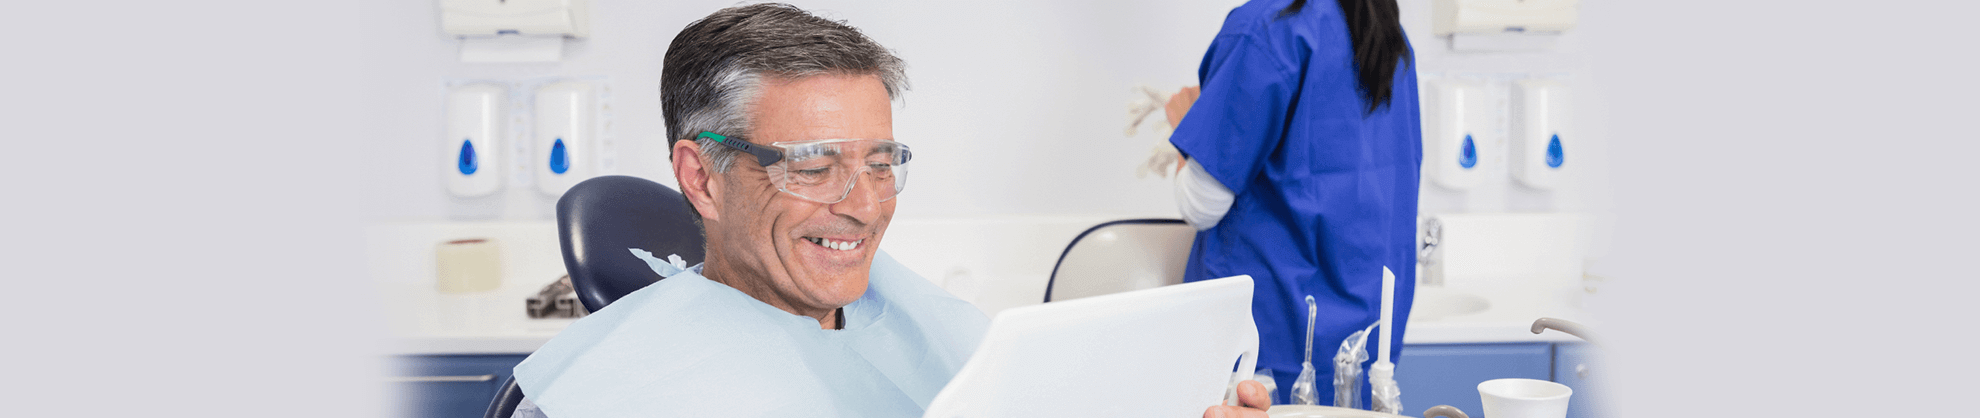 Dental Implants Services Oak Park, IL